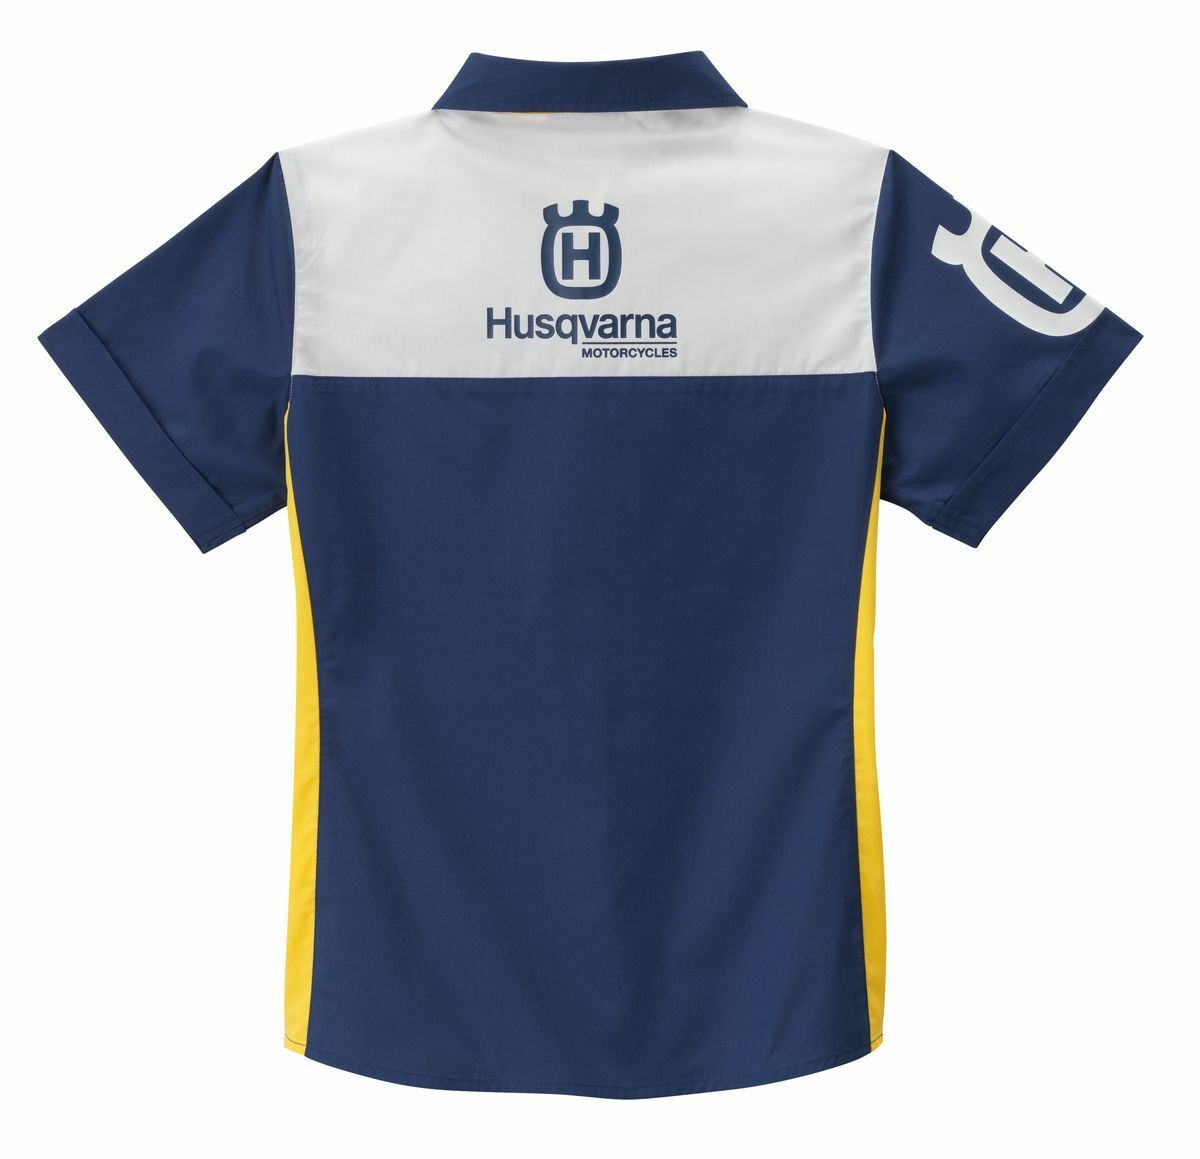 HUSQVARNA GIRLS TEAM T-SHIRT S HUSQVARNA Casual CLOTHING 2016 2016 2016 0640af